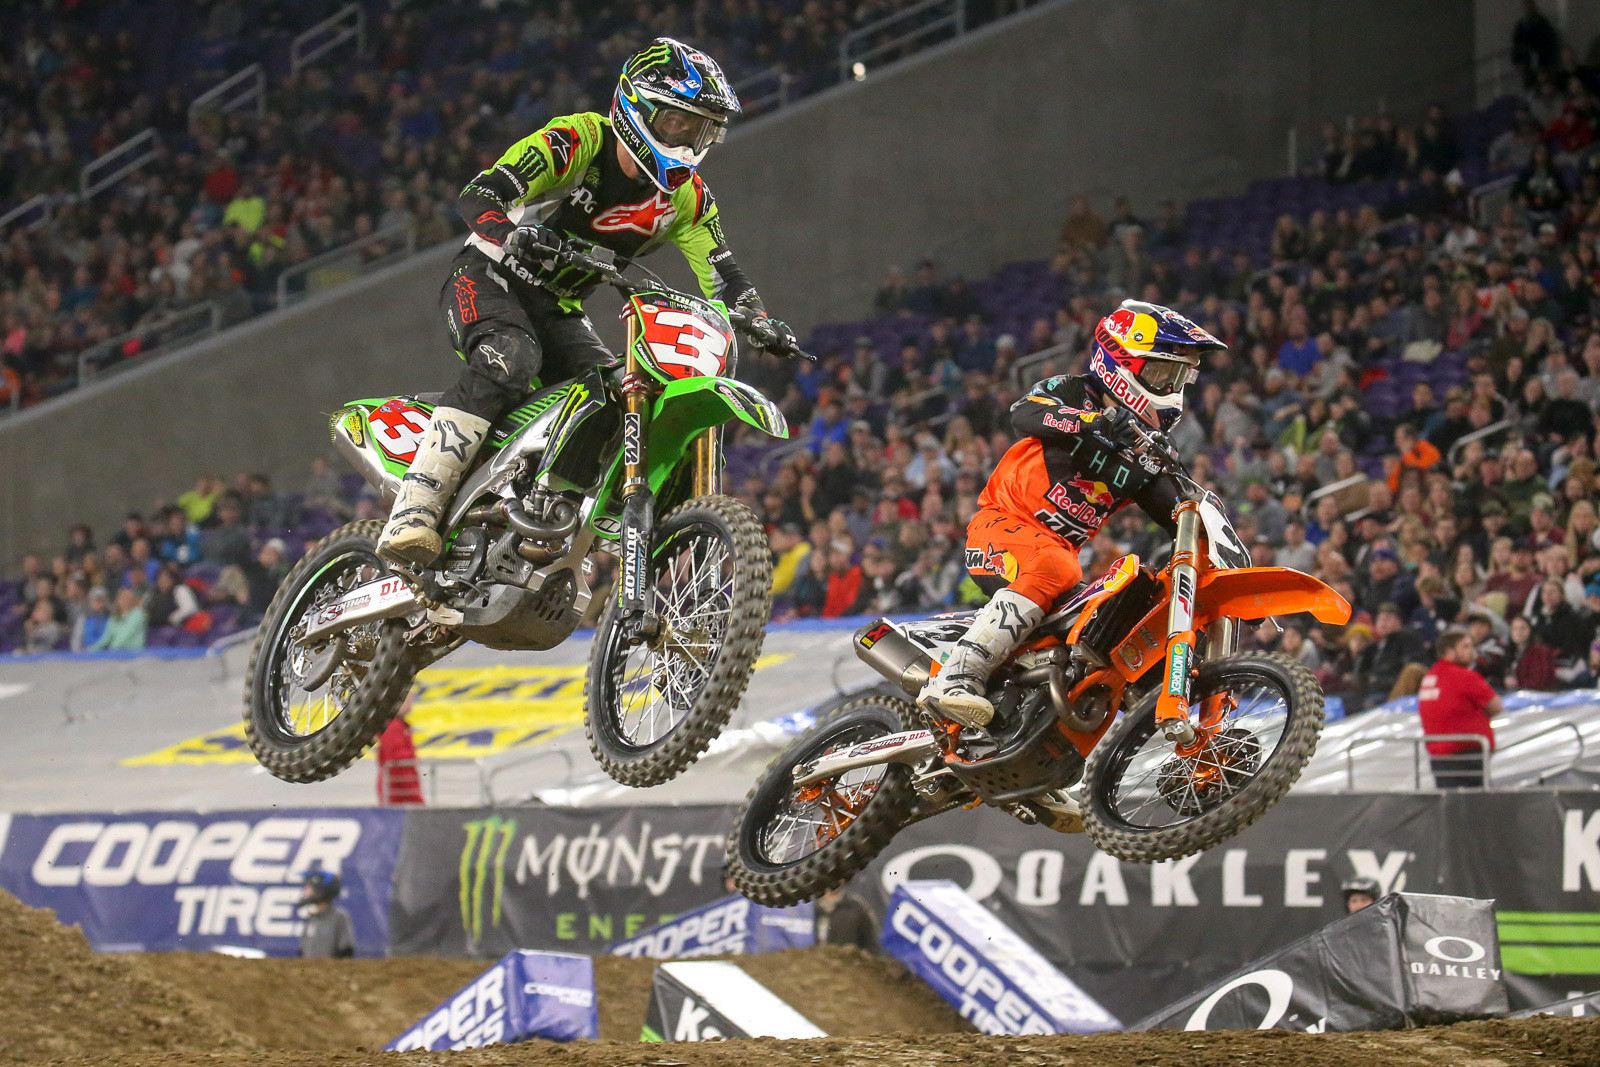 Eli Tomac showed good early speed as he battle with Cooper Webb for the first 450 heat win.